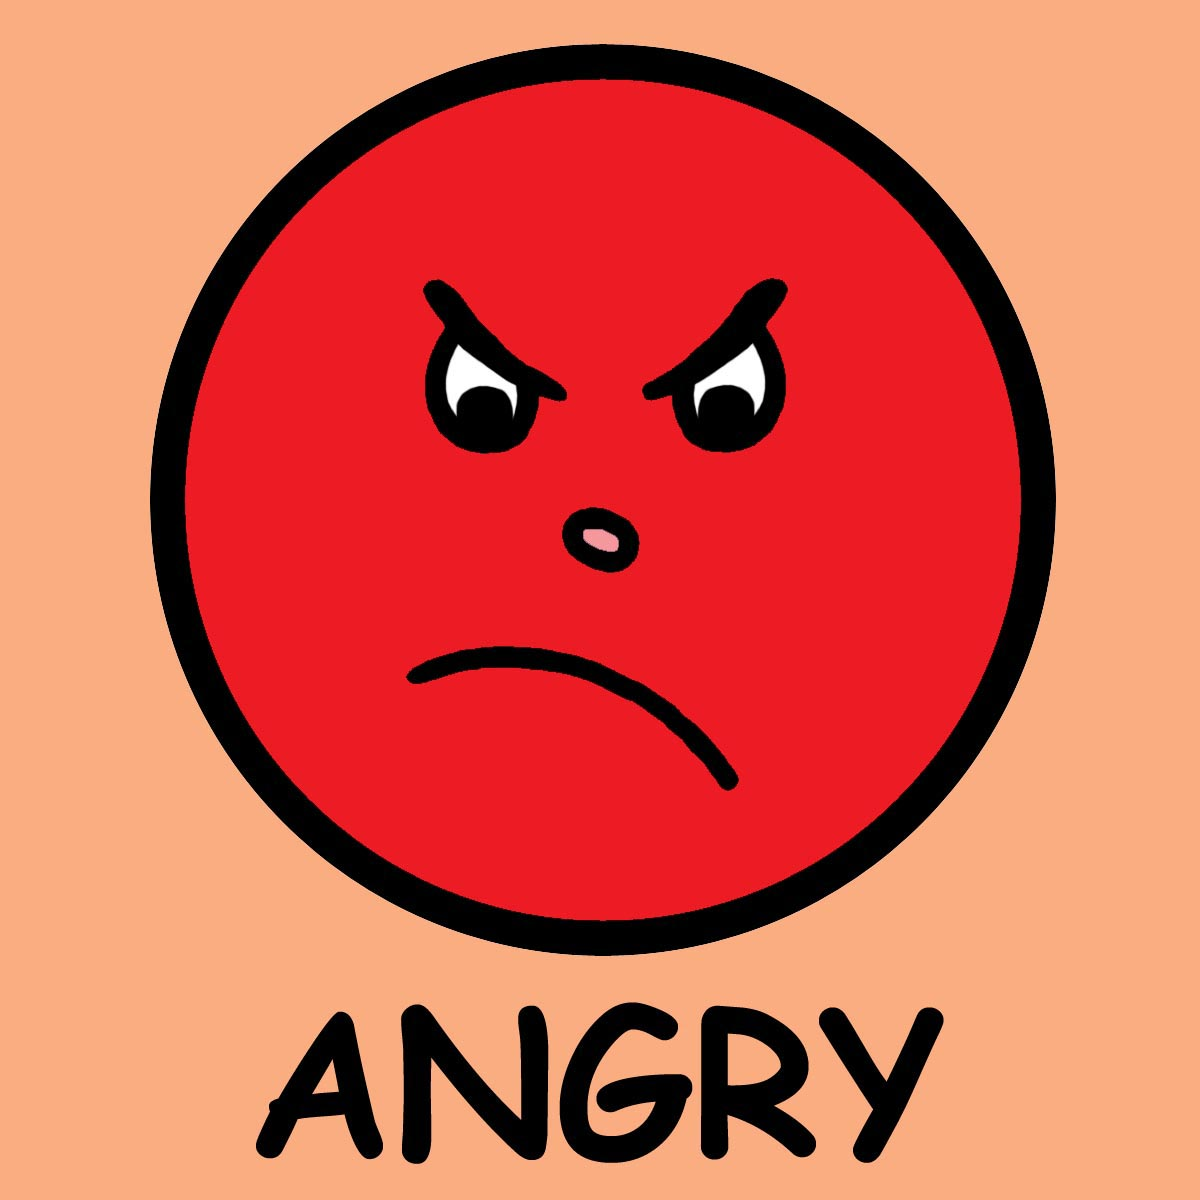 Emotions mad pencil and. Angry clipart angry emotion